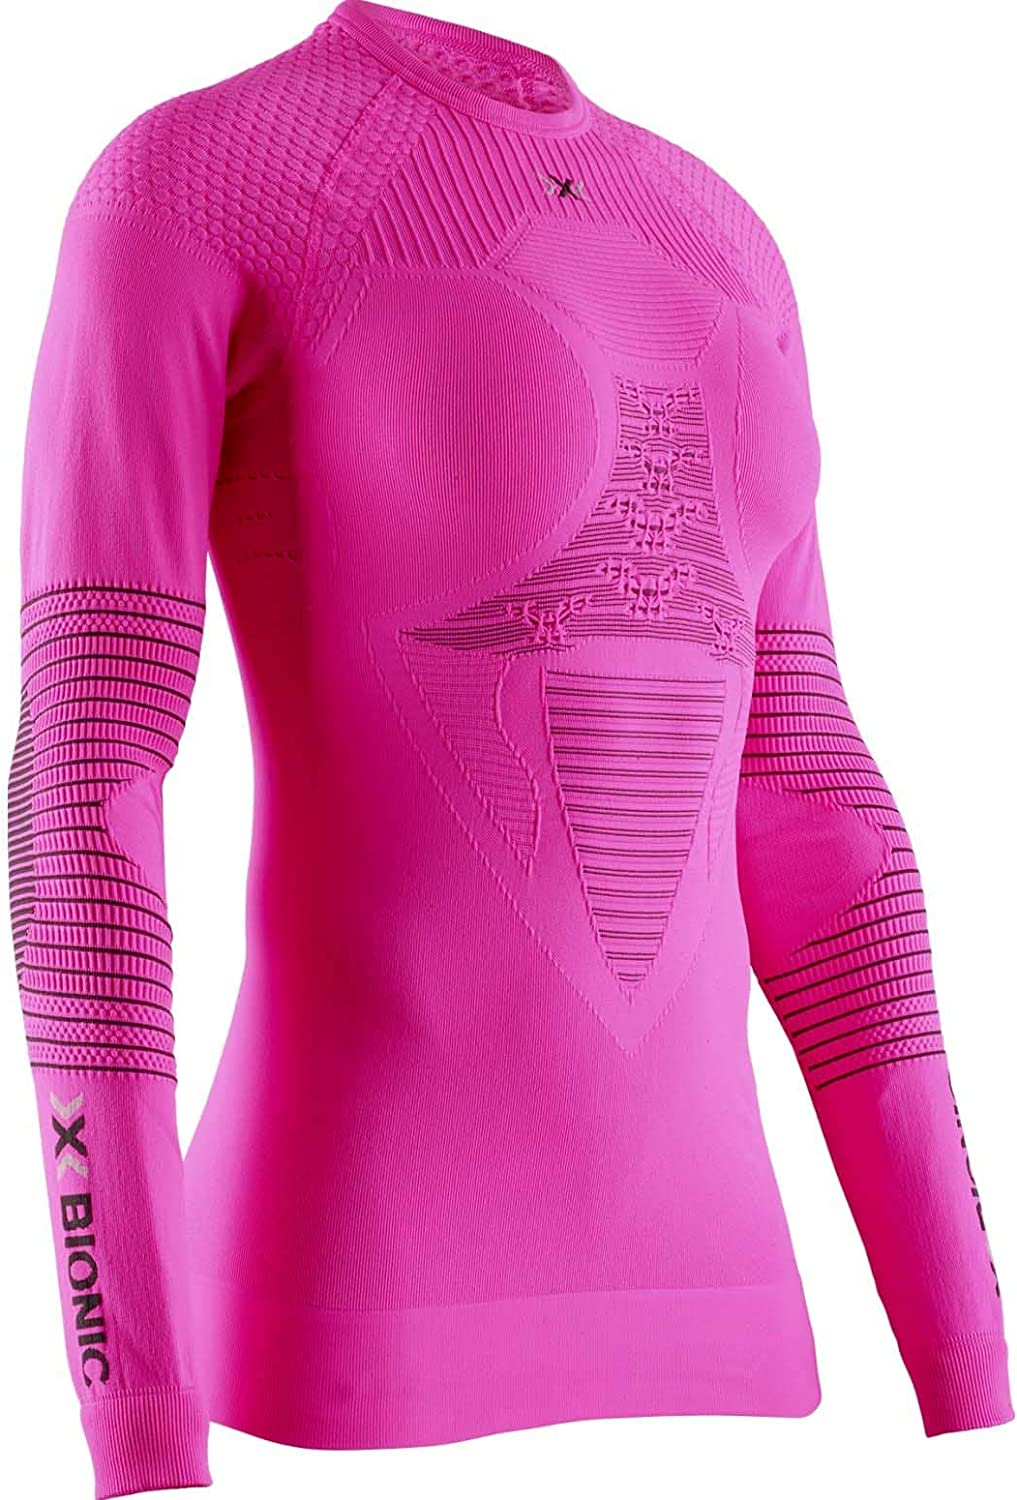 X-Bionic Energizer 4.0 Round Neck Long Sleeves Neon Flamingo//Anthracite Rosso Strato Base Camicia Funzionale Donna S